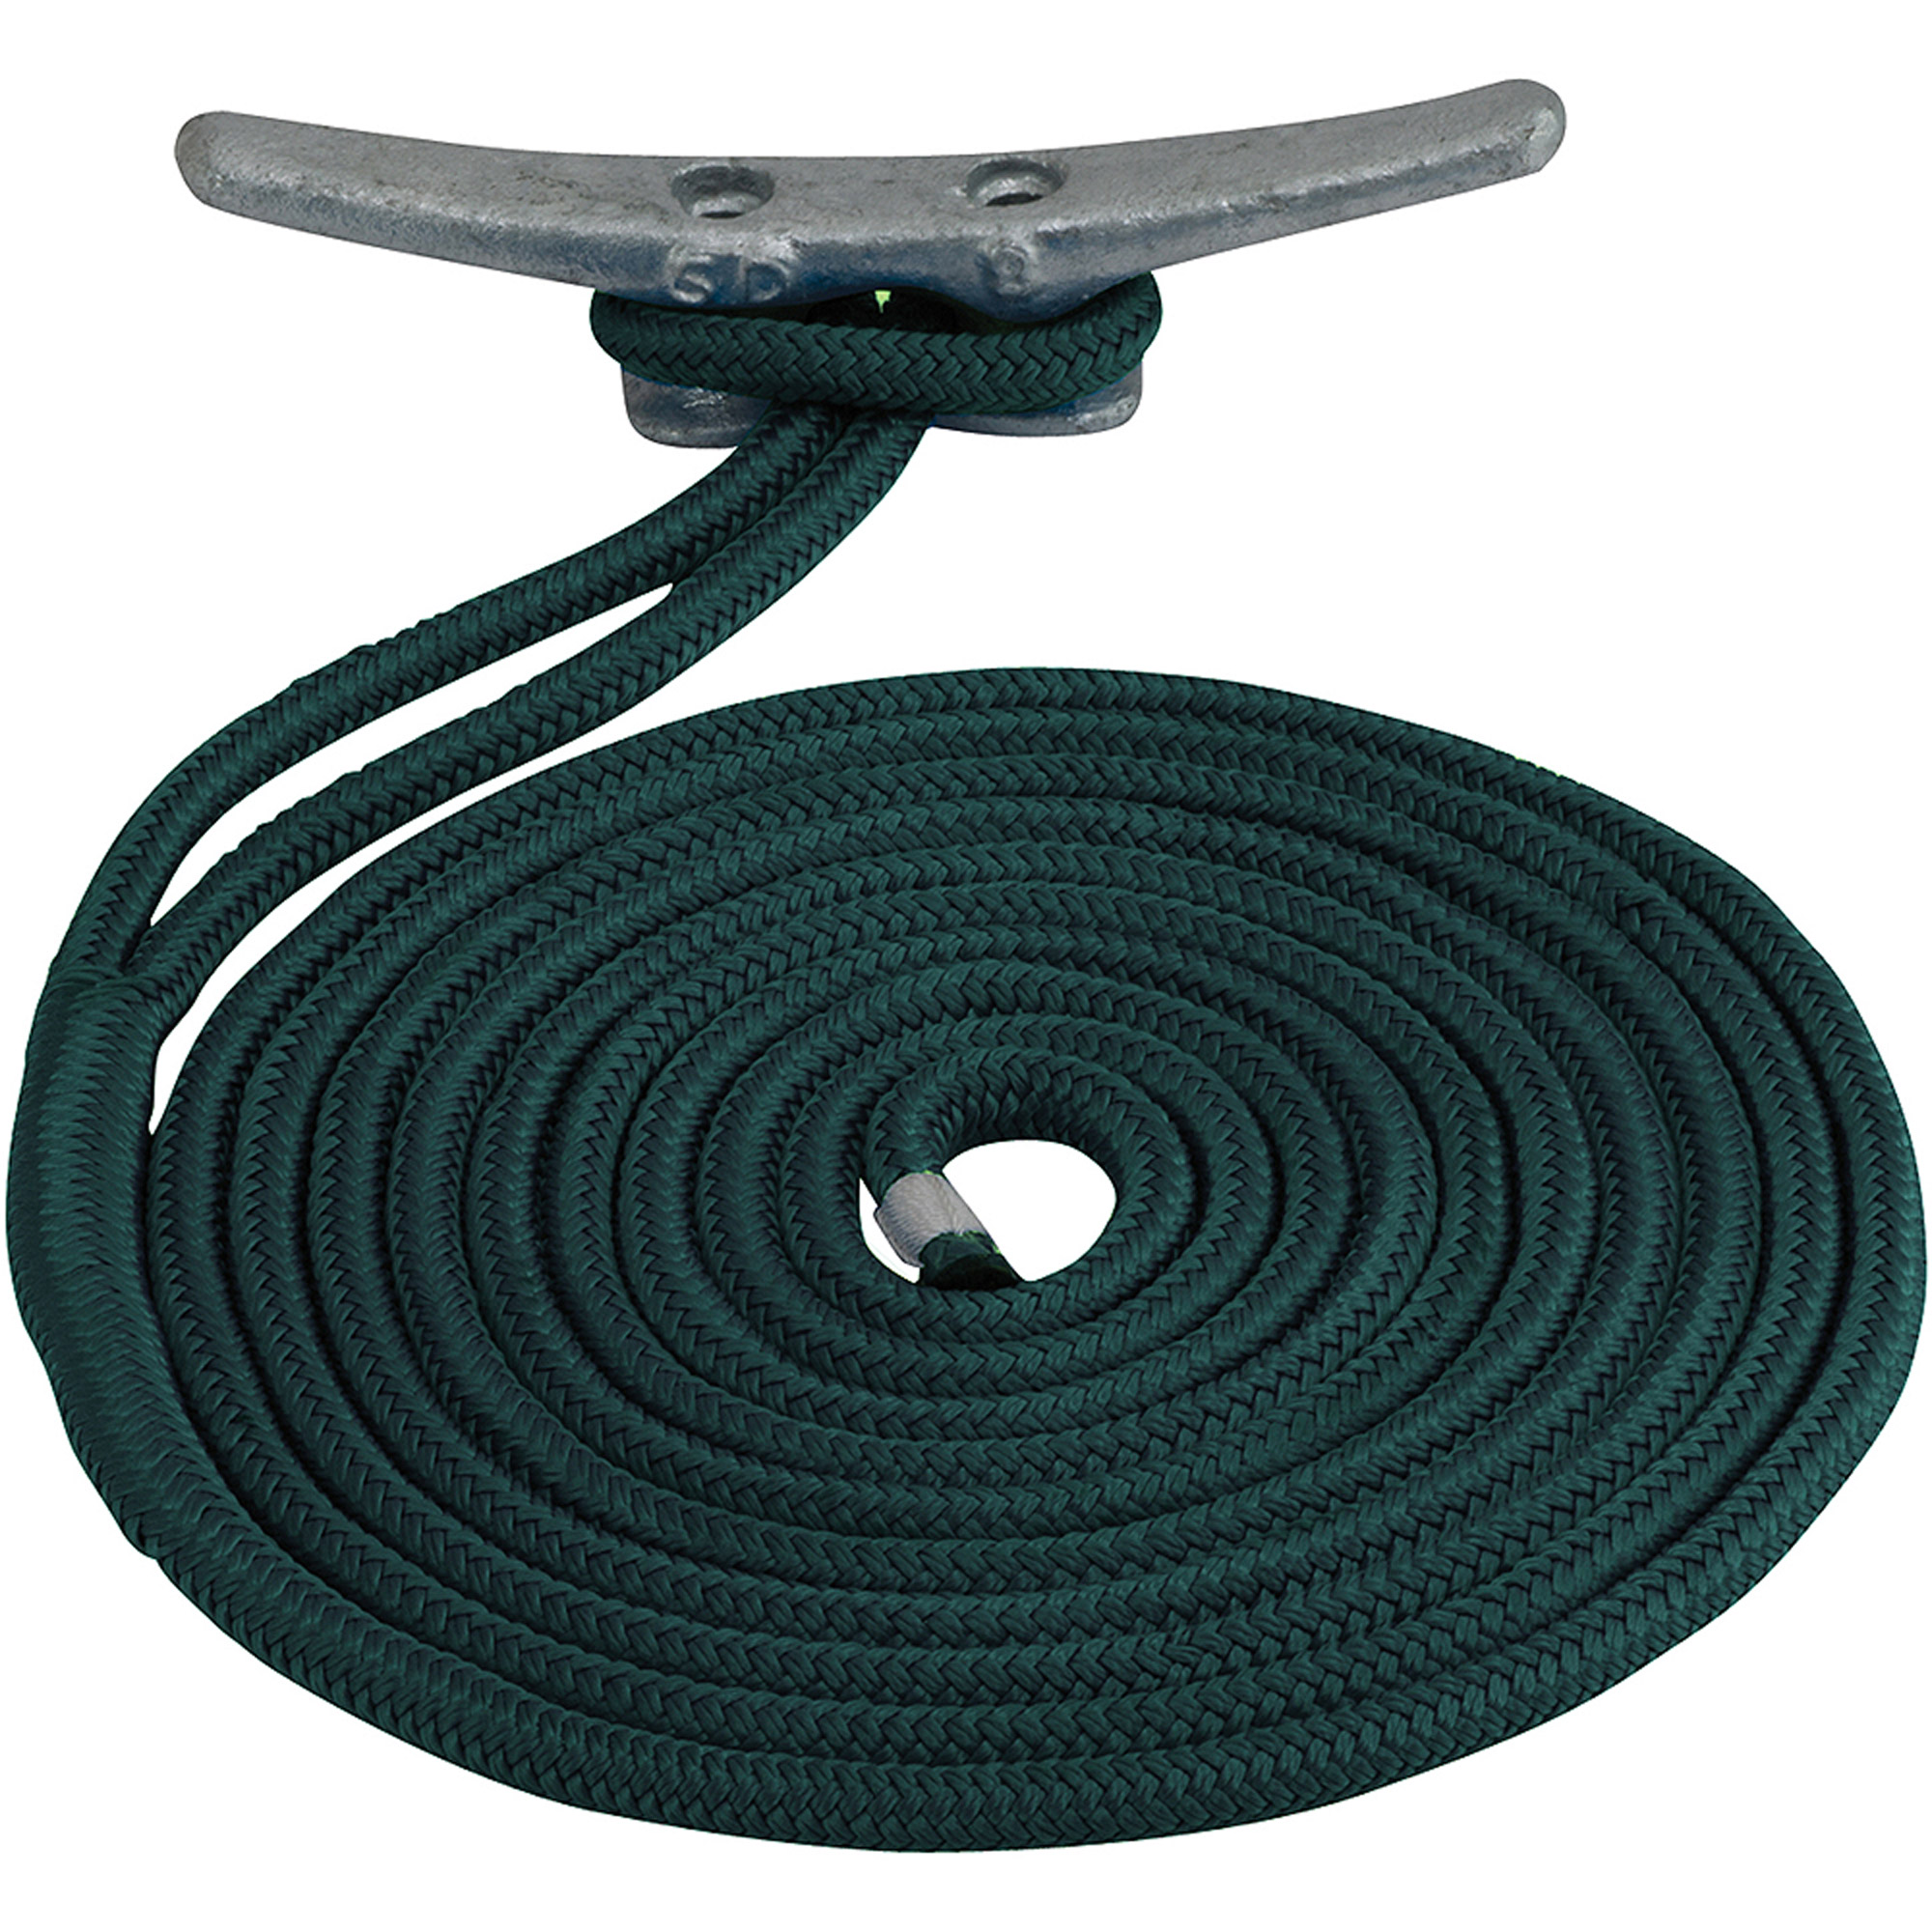 "Sea Dog Dock Line, Double Braided Nylon, 1 2"" x 15', Teal by Sea-Dog Line"